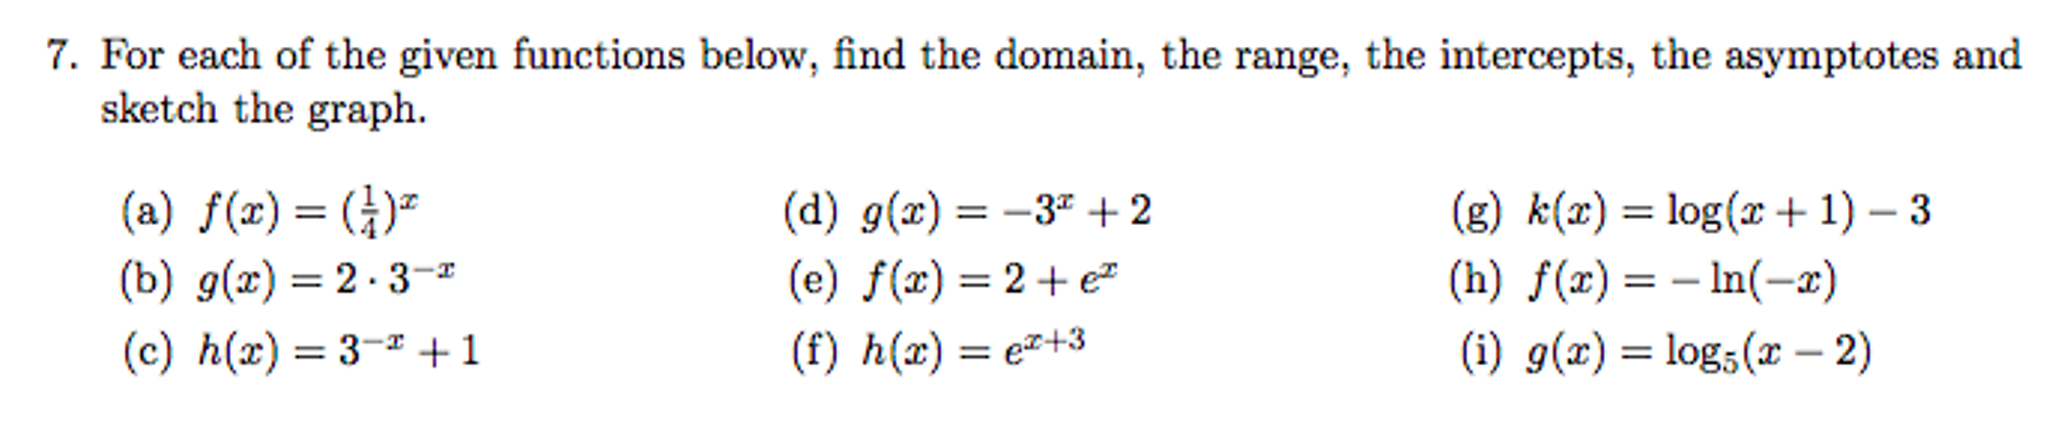 For Each Of The Given Functions Below, Find The Do